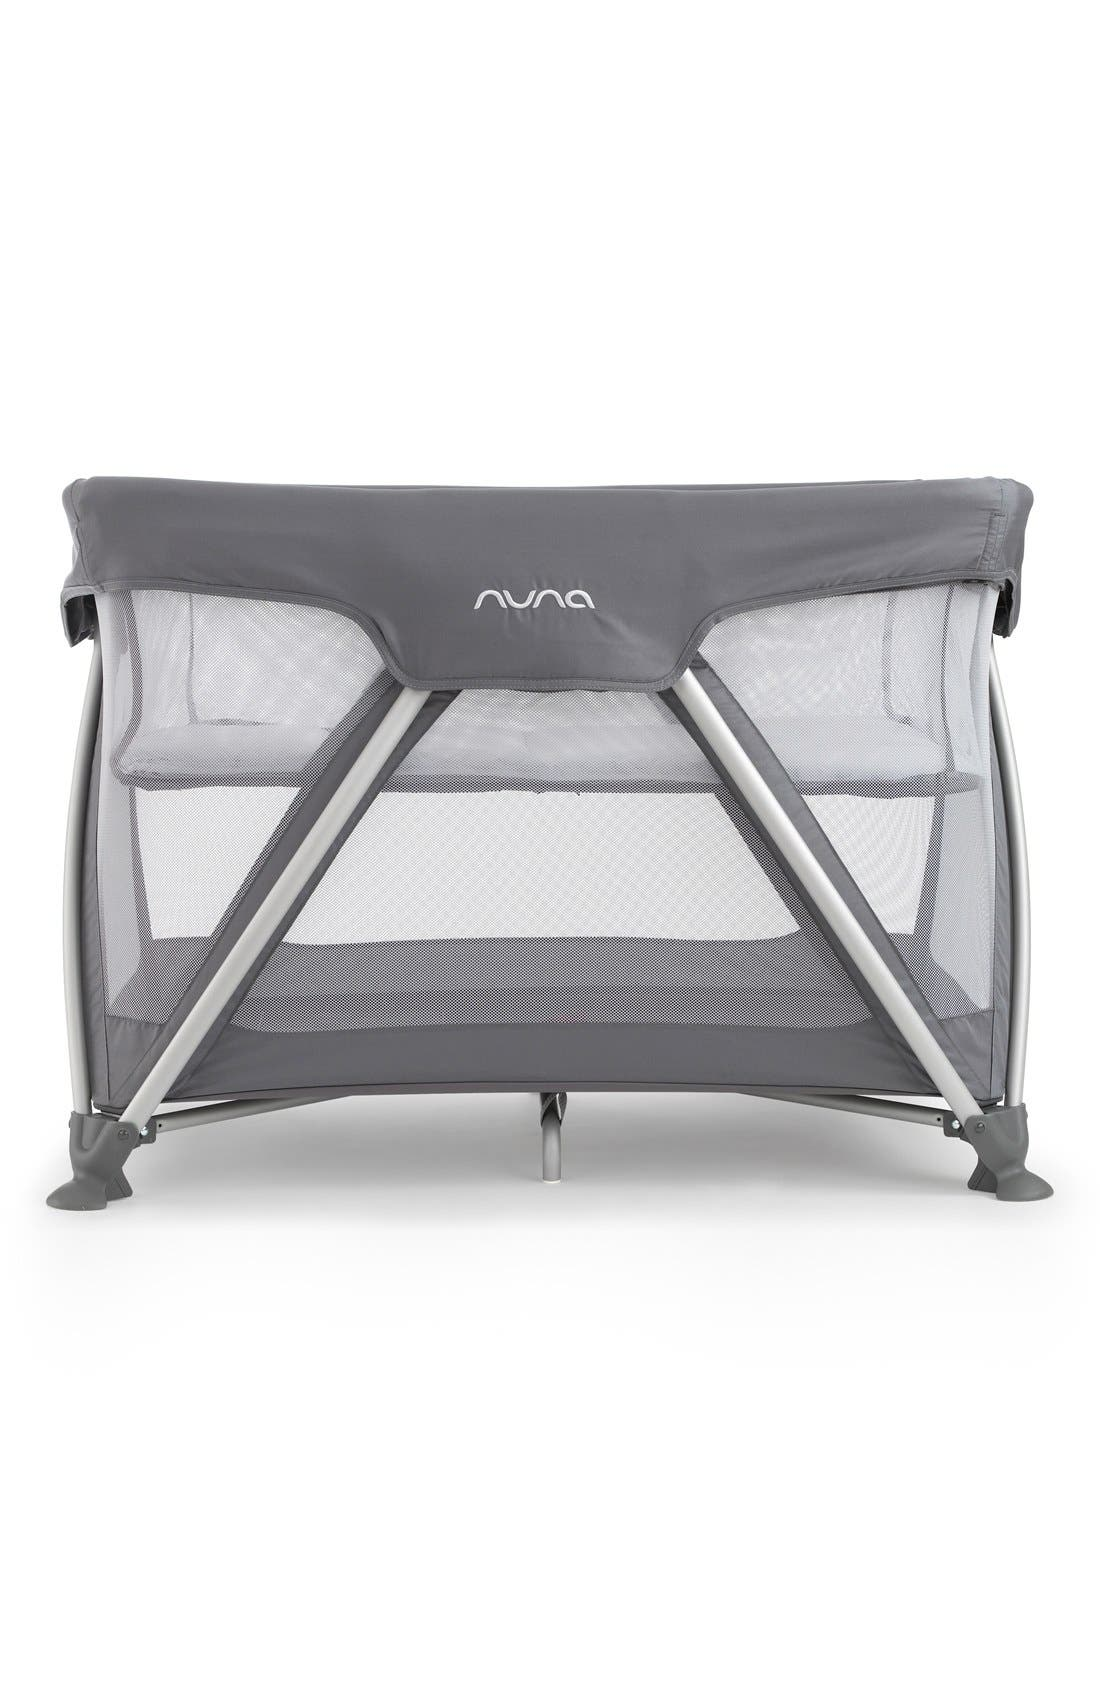 nuna Travel Crib, Fitted Sheet & Changing Pad